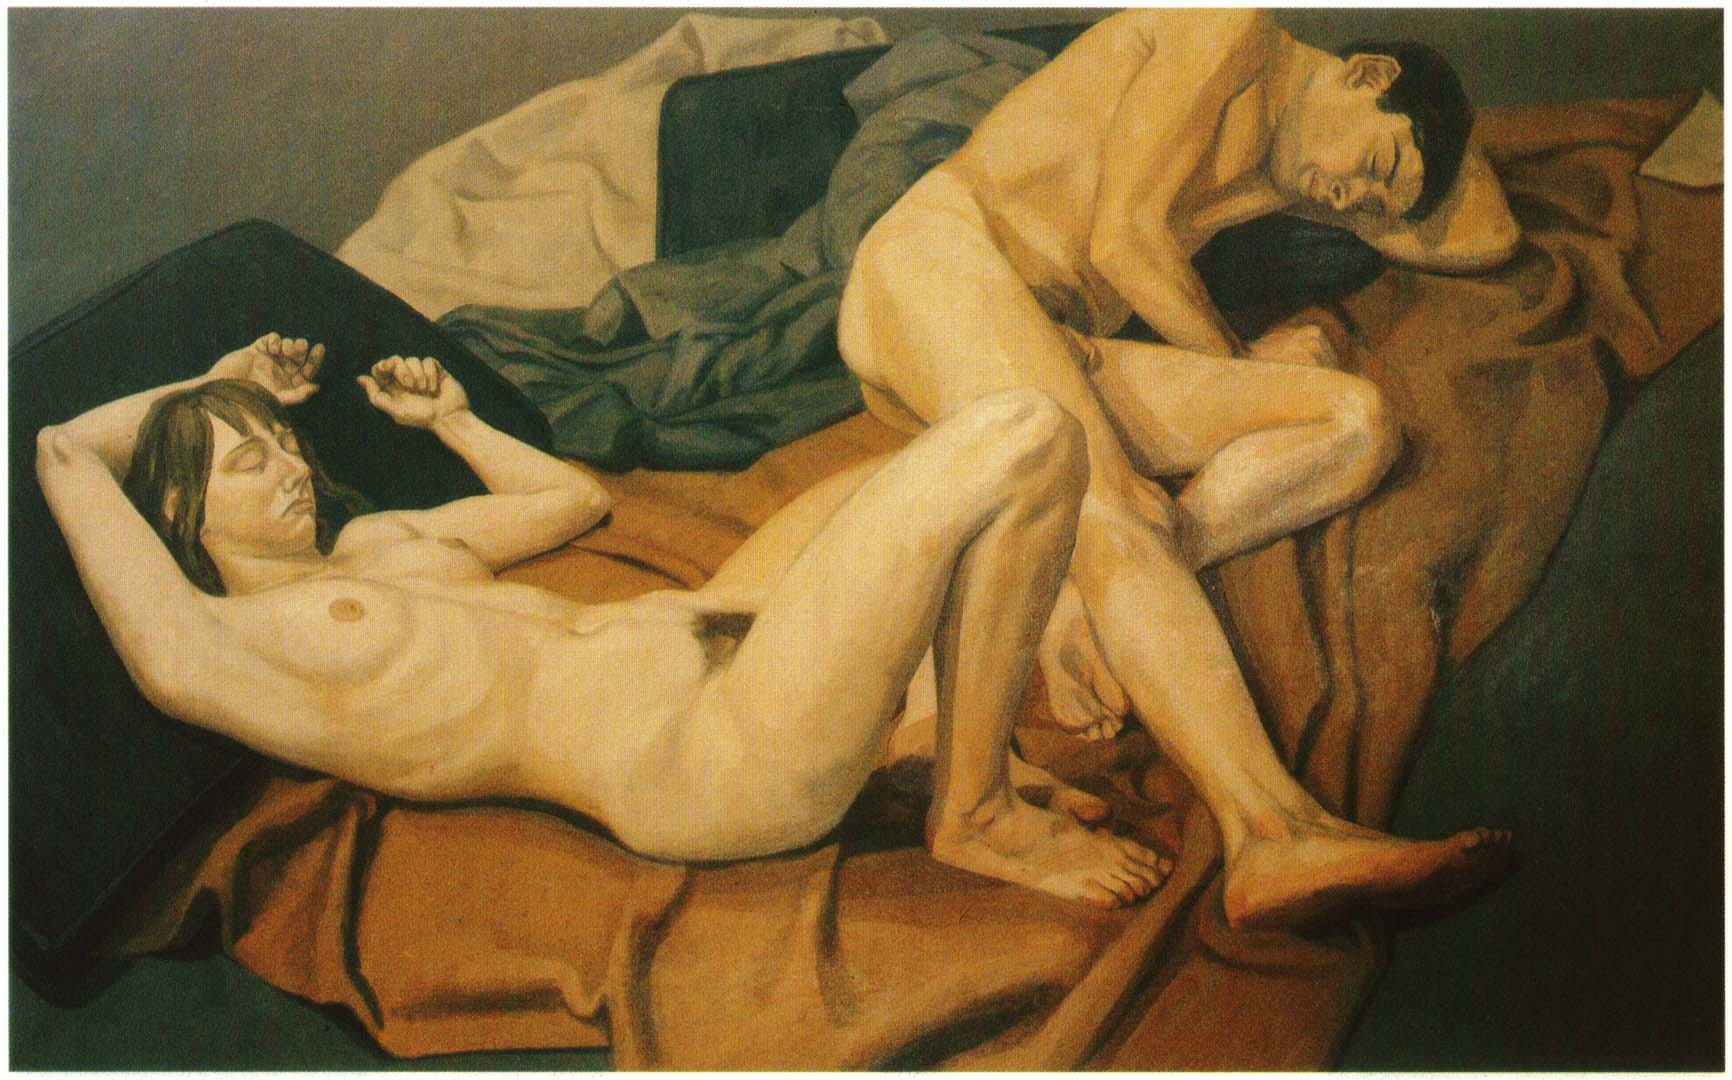 1964 Male and Female Model Reclining Oil on Canvas 60 x 96